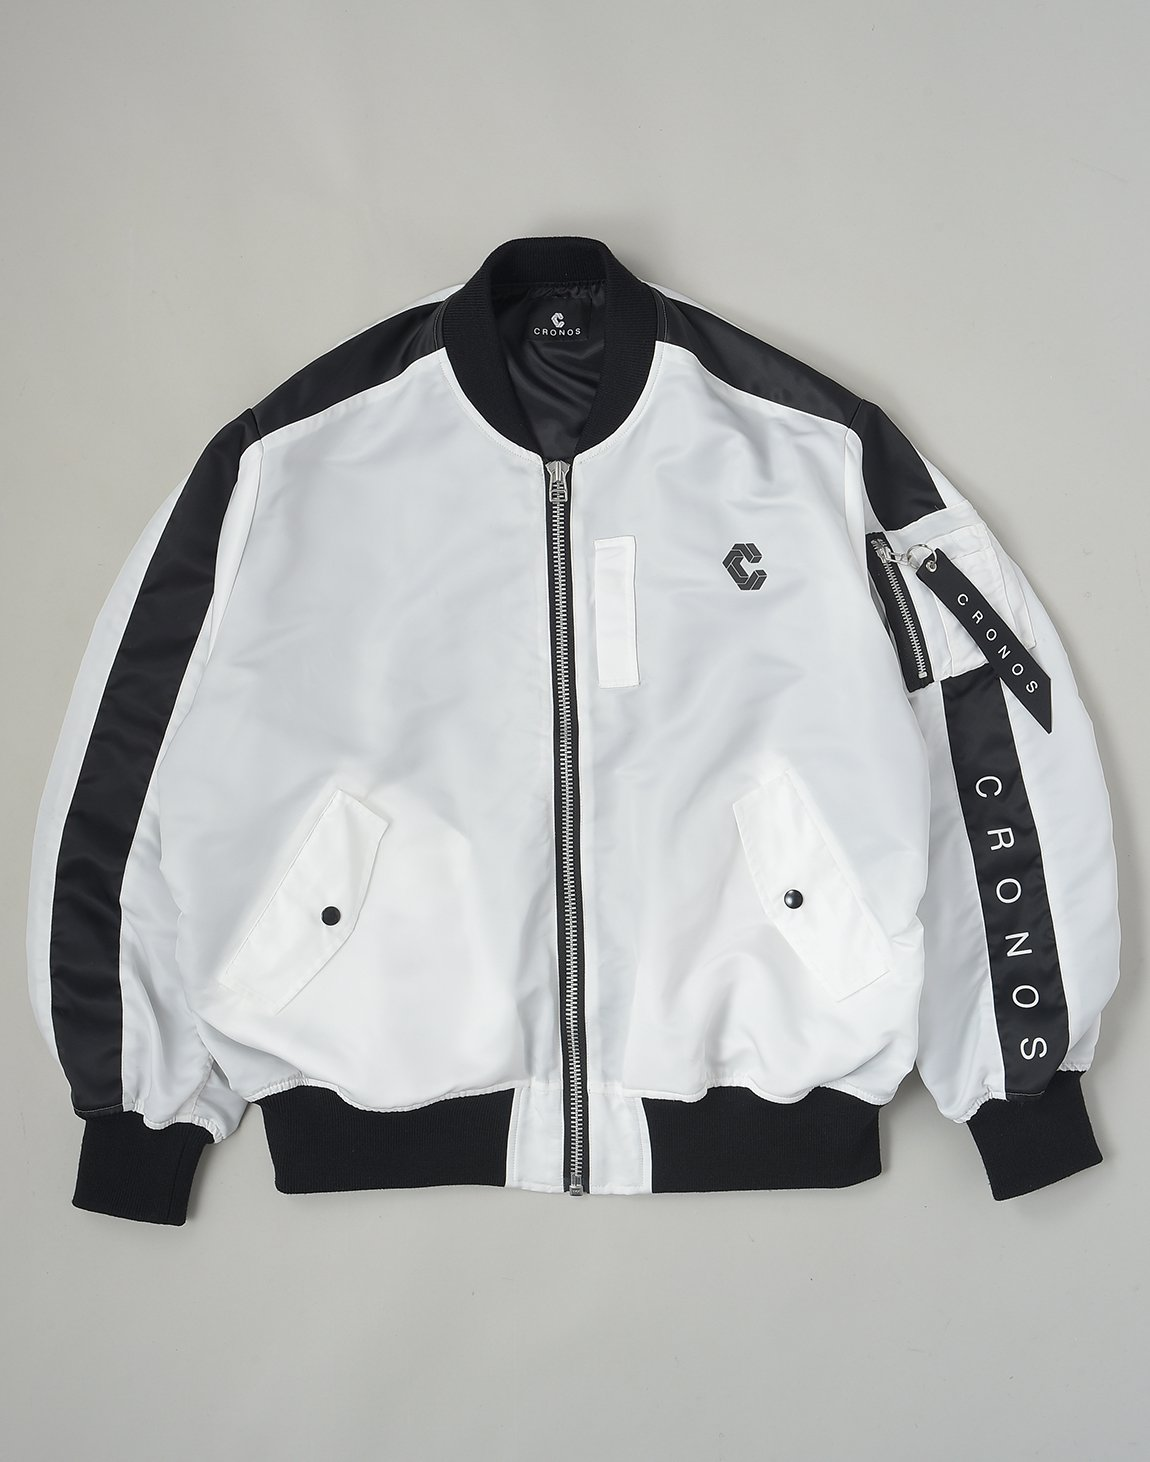 <img class='new_mark_img1' src='https://img.shop-pro.jp/img/new/icons1.gif' style='border:none;display:inline;margin:0px;padding:0px;width:auto;' />CRONOS NEW BOMBER JACKET【WHITE】